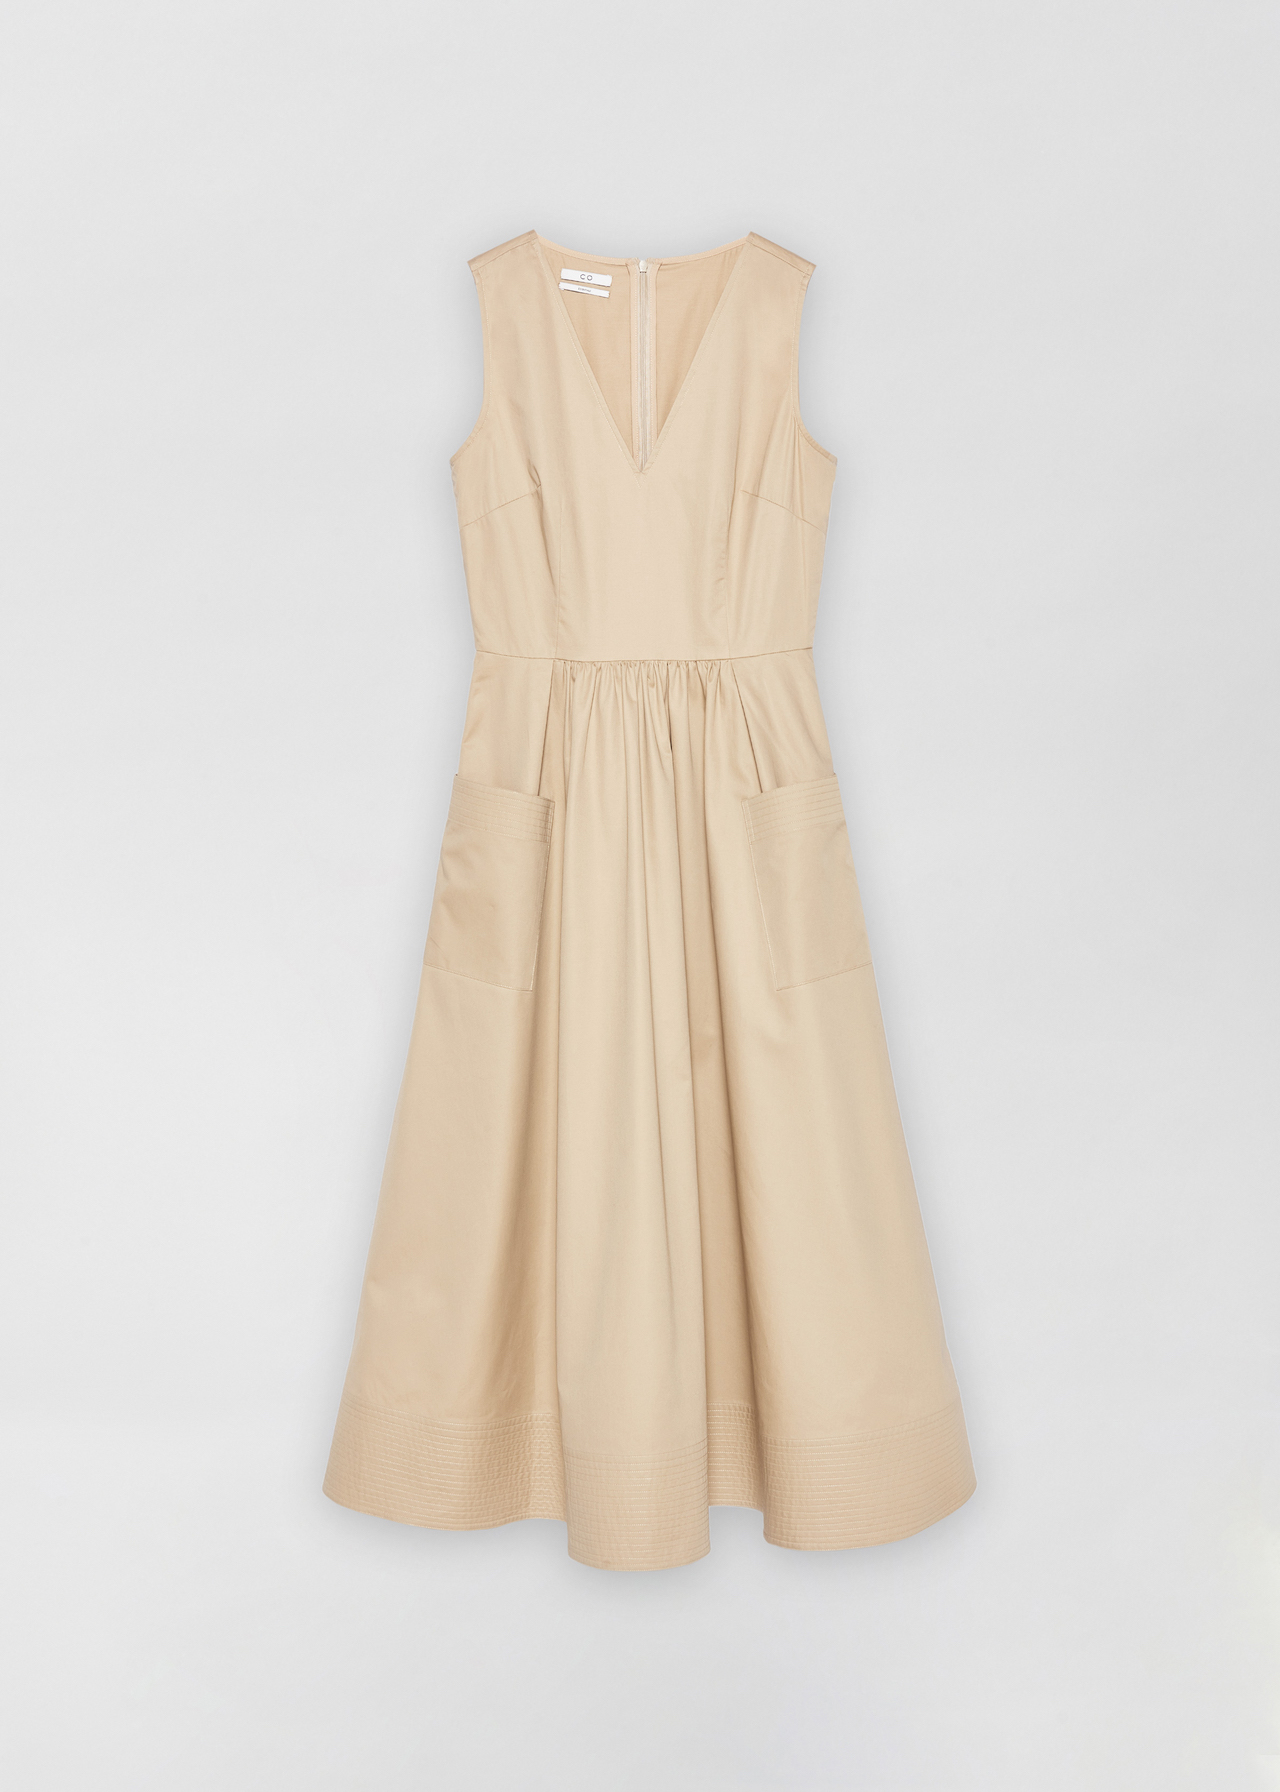 Sleeveless Trapunto Hem Dress - White in Taupe by Co Collections